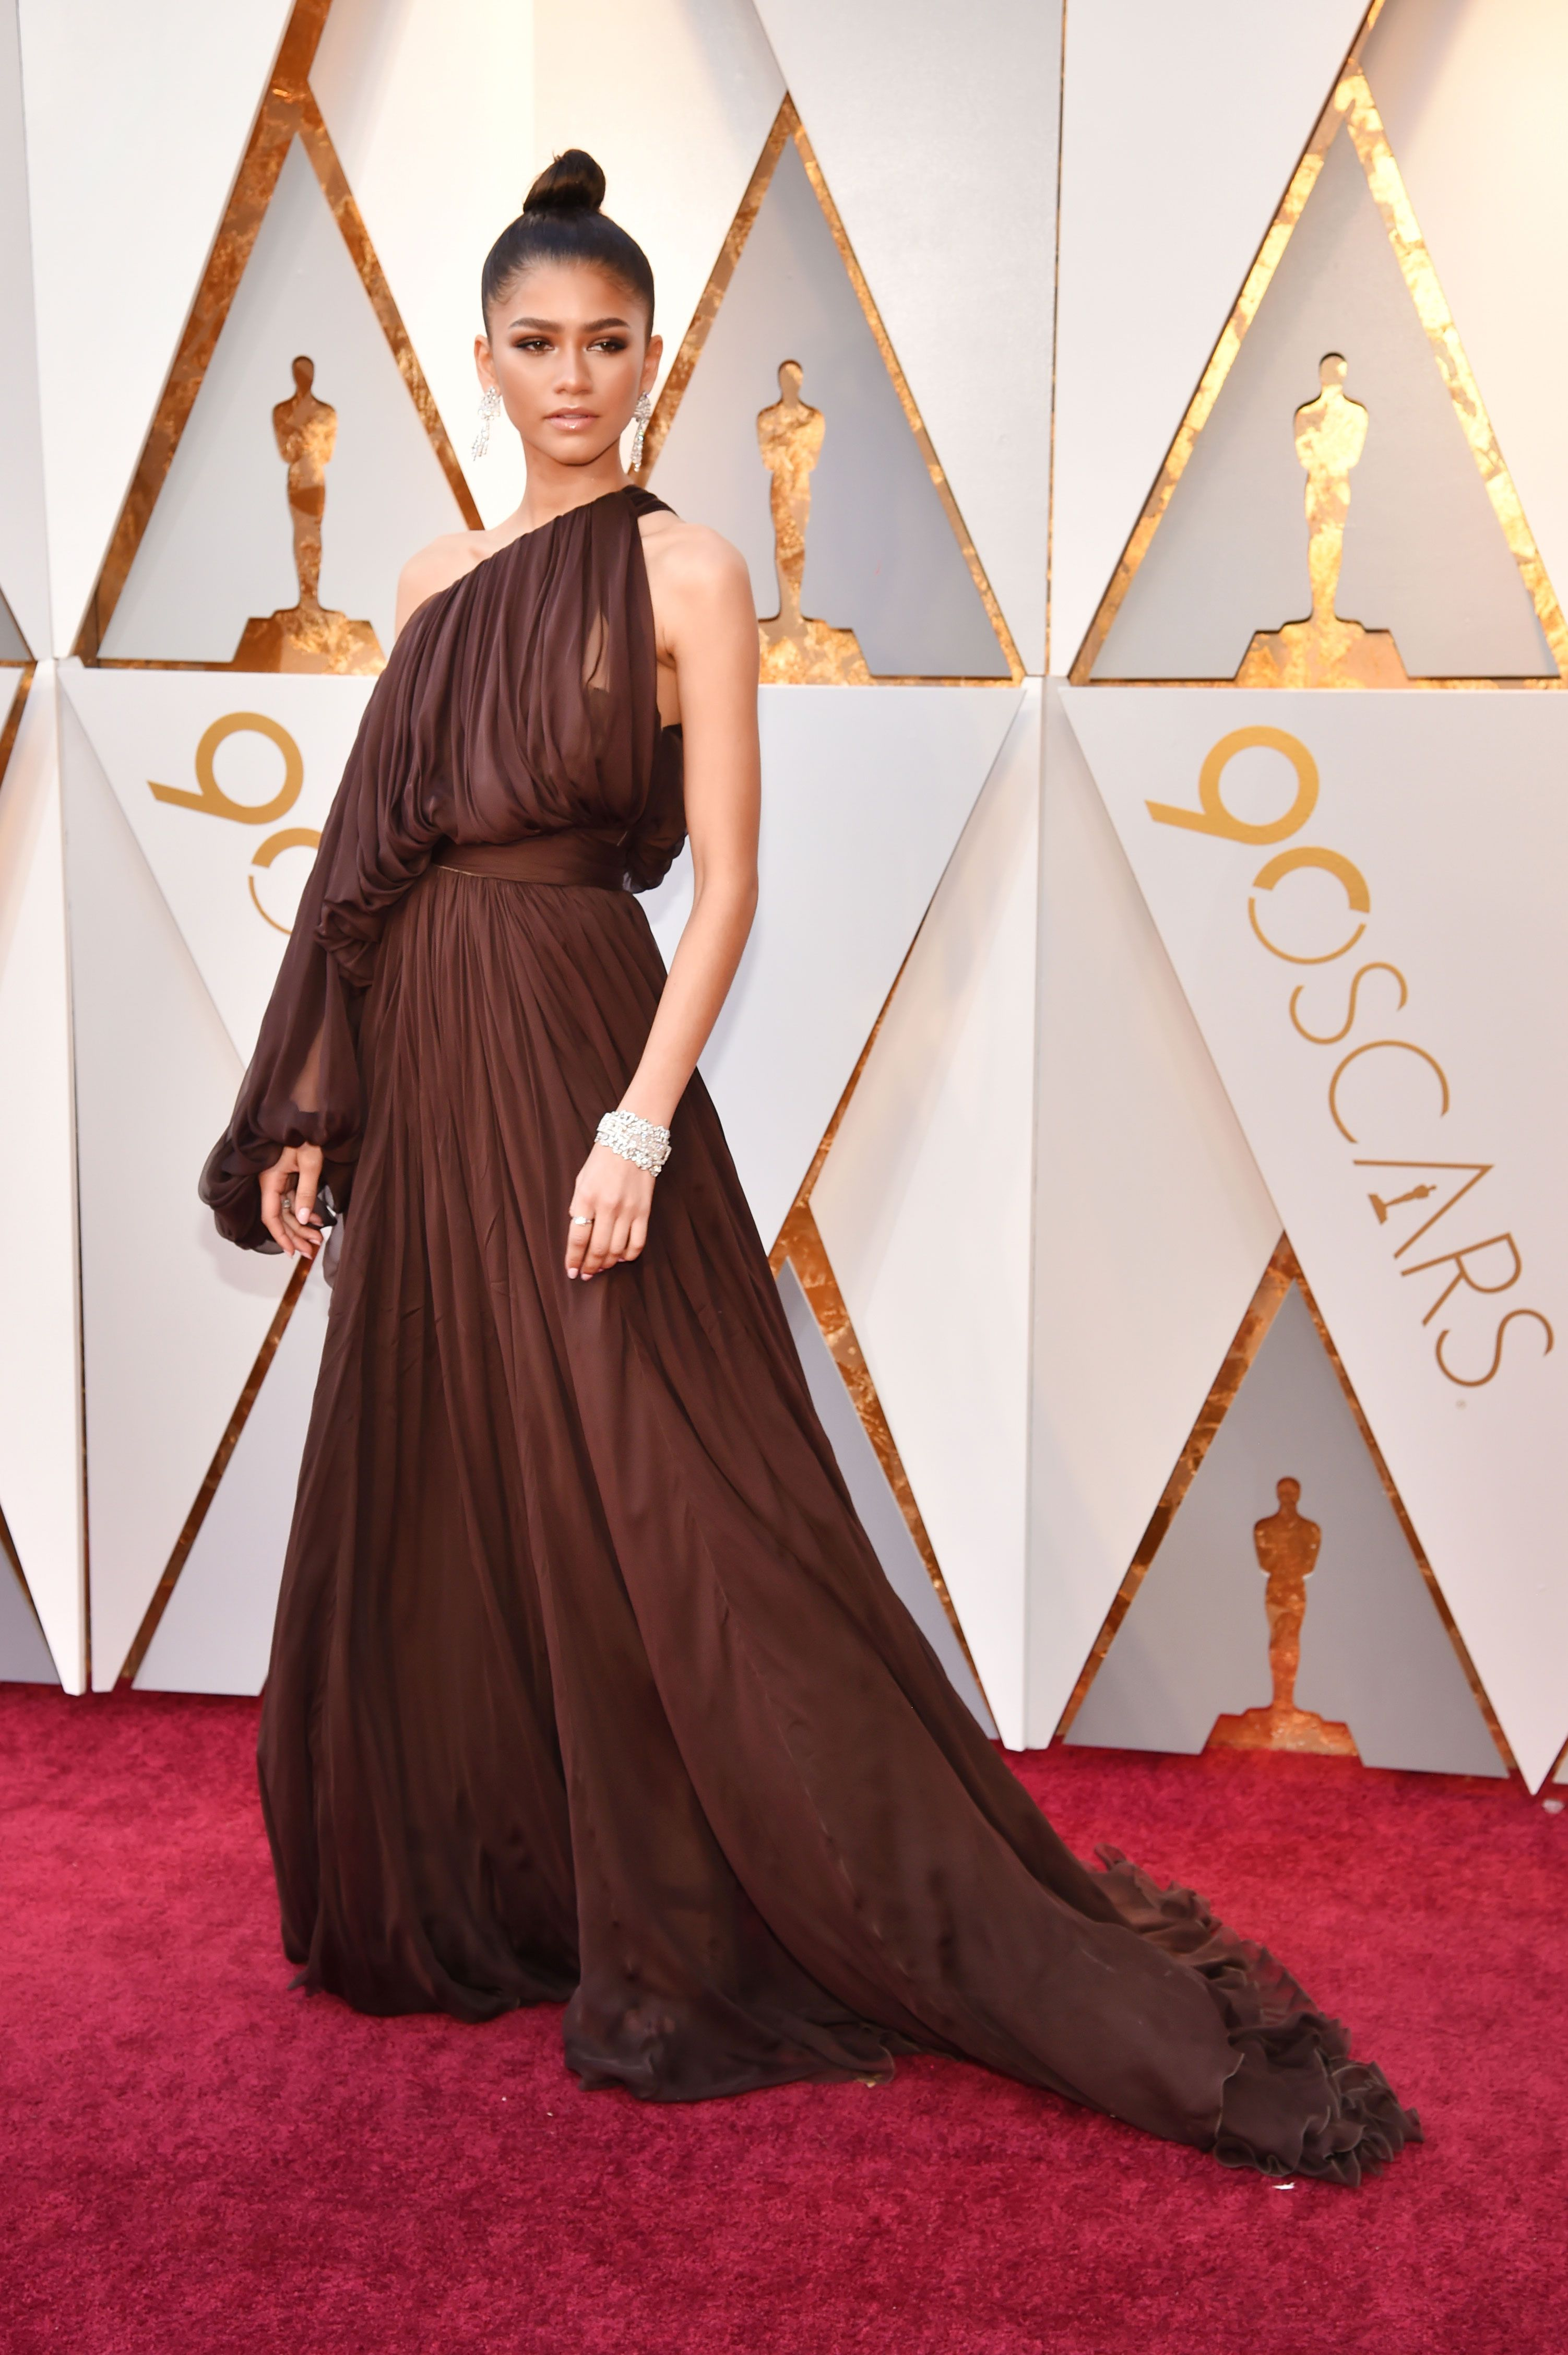 Best Oscars Red Carpet Dresses 2018 Style From Academy Awards